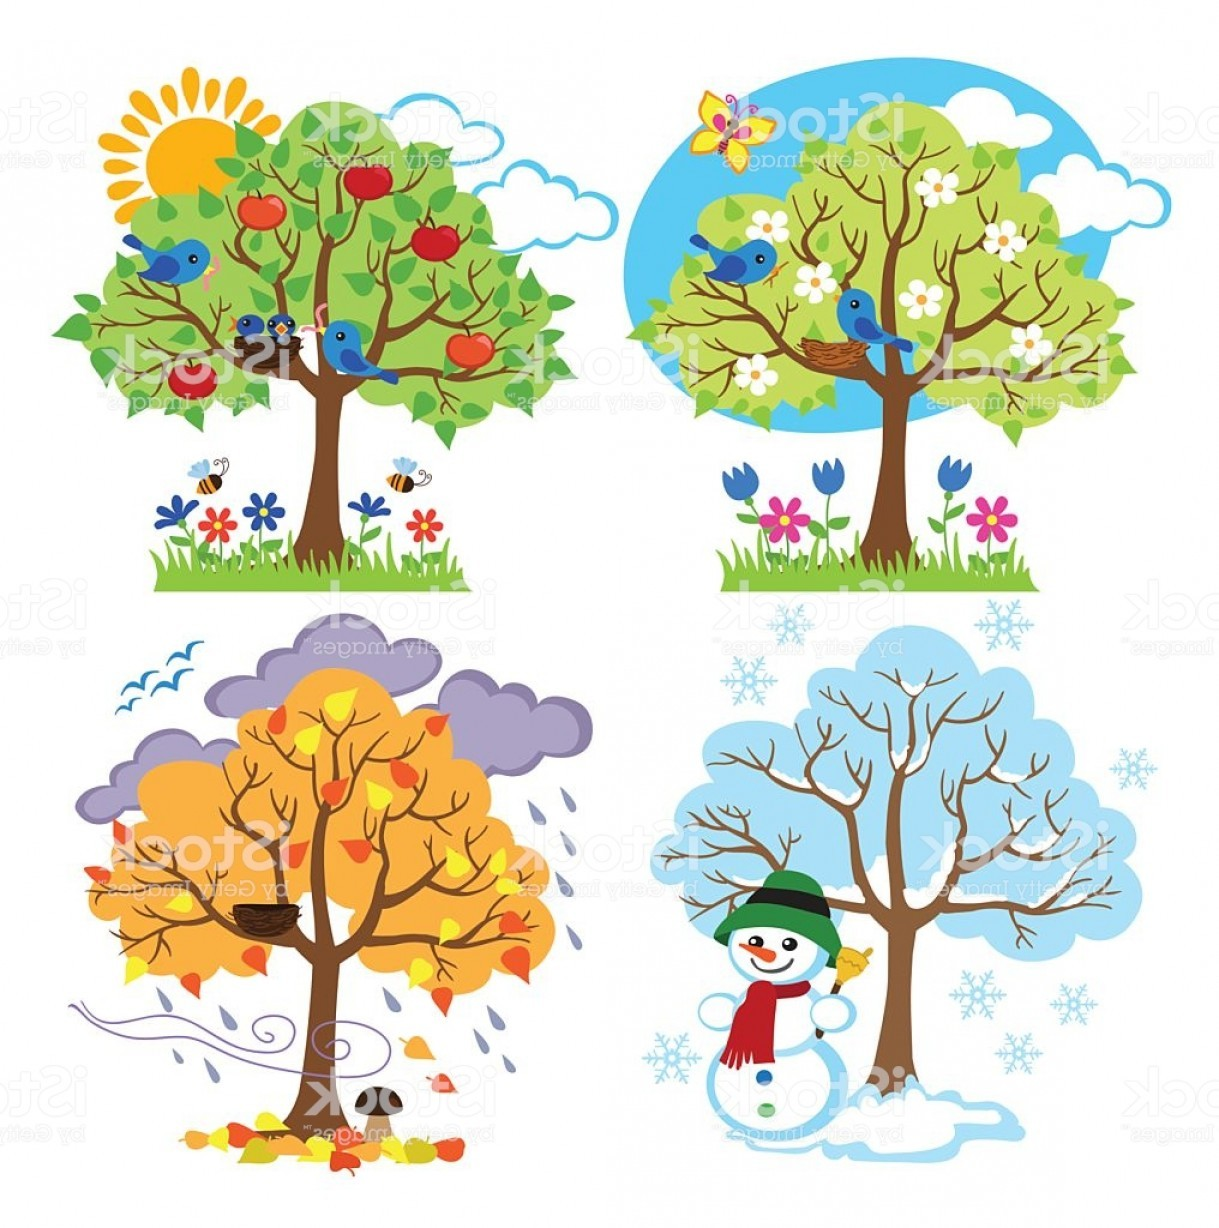 4 seasons images clipart png royalty free download 4 Seasons Clipart 28 Four Seasons Clipart | gomediaction.net png royalty free download